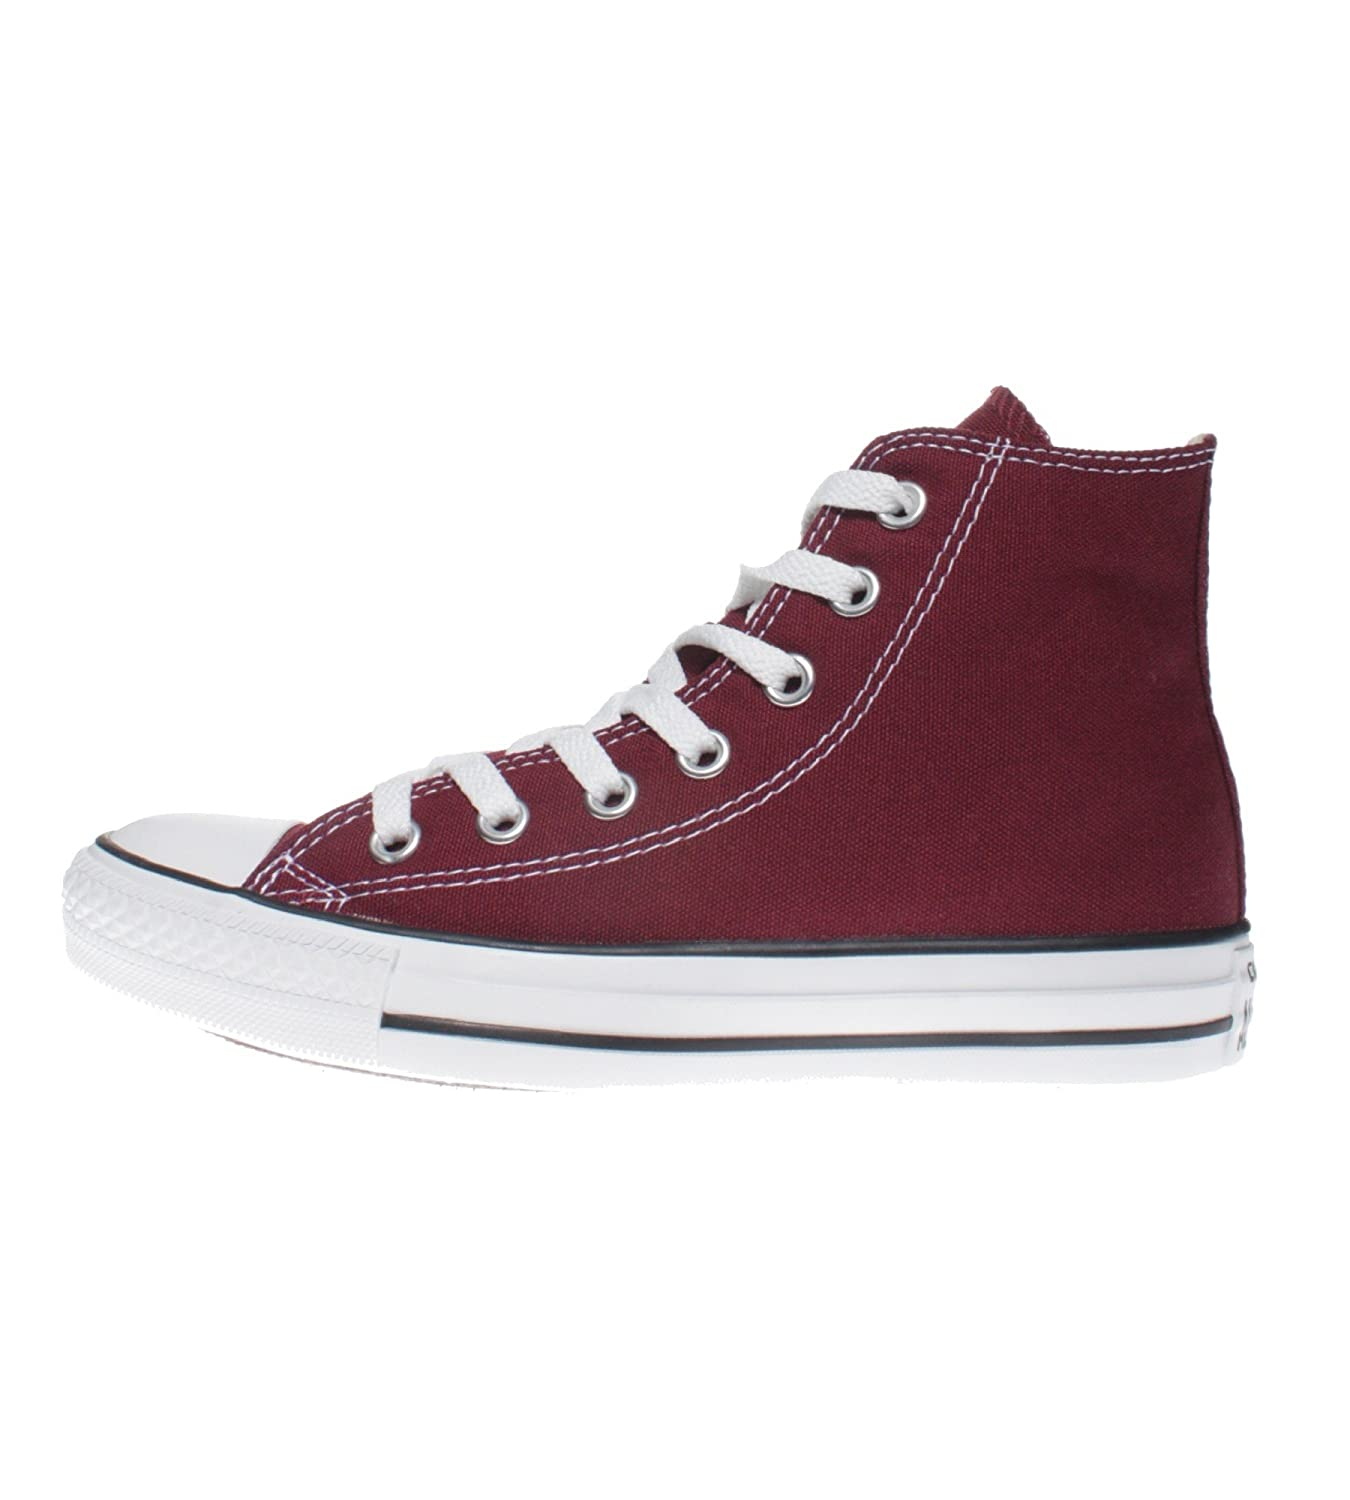 Converse chuck taylor all star for Converse all star amazon